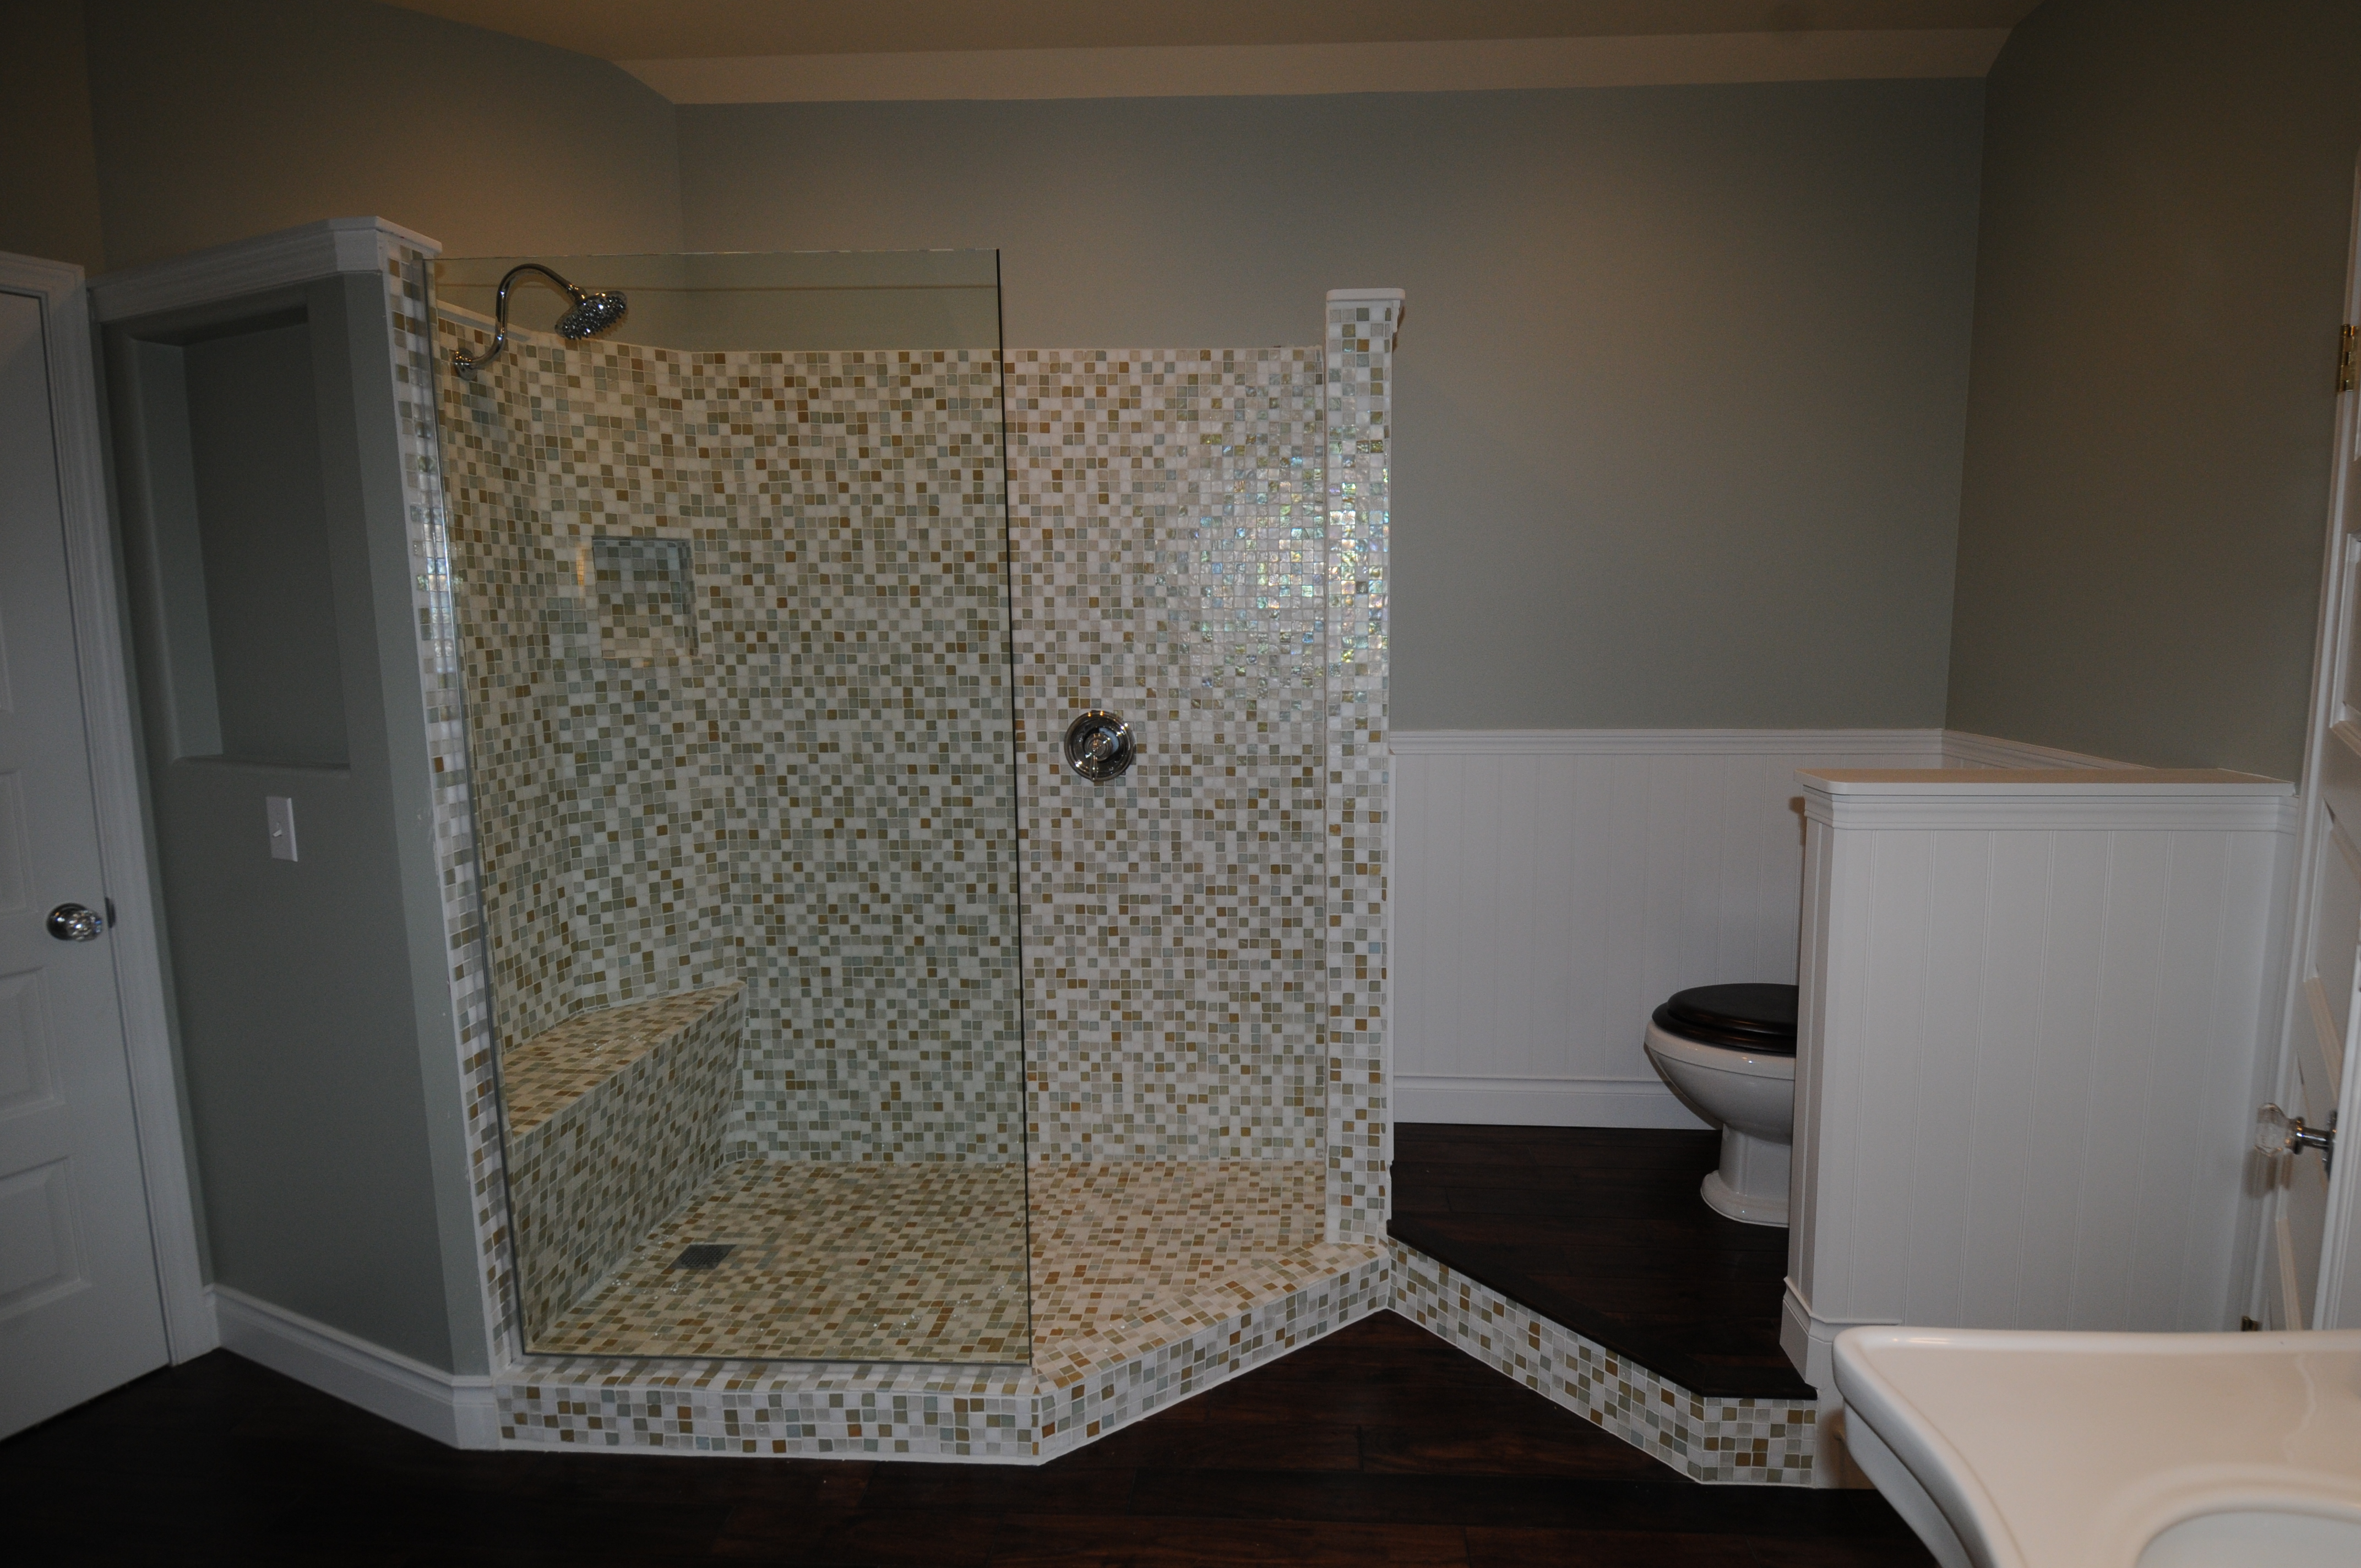 Shower Area of the Kennedy House Bath After Renovation